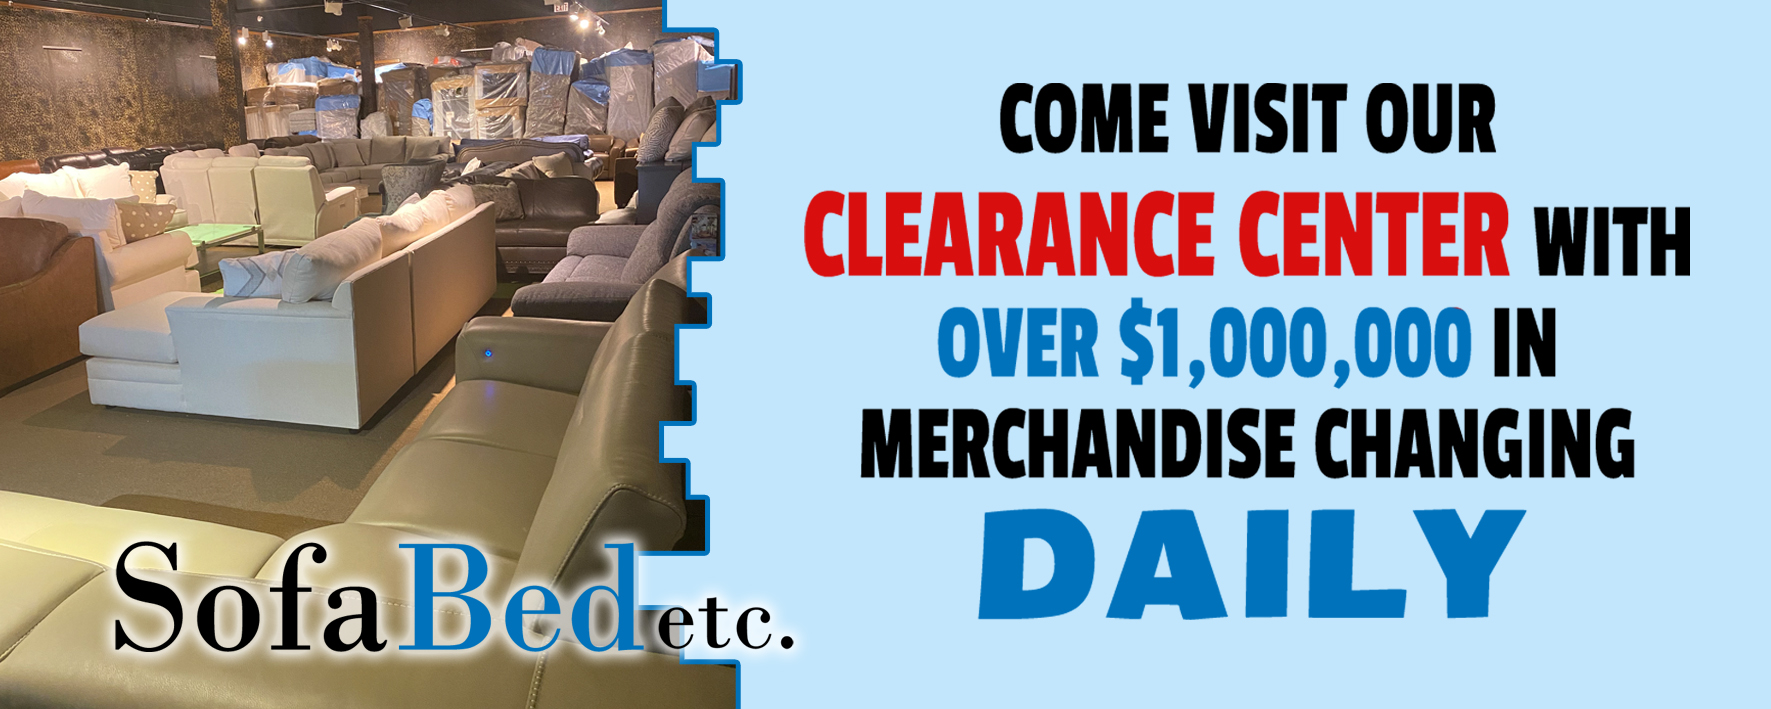 clearance banner for sofa bed